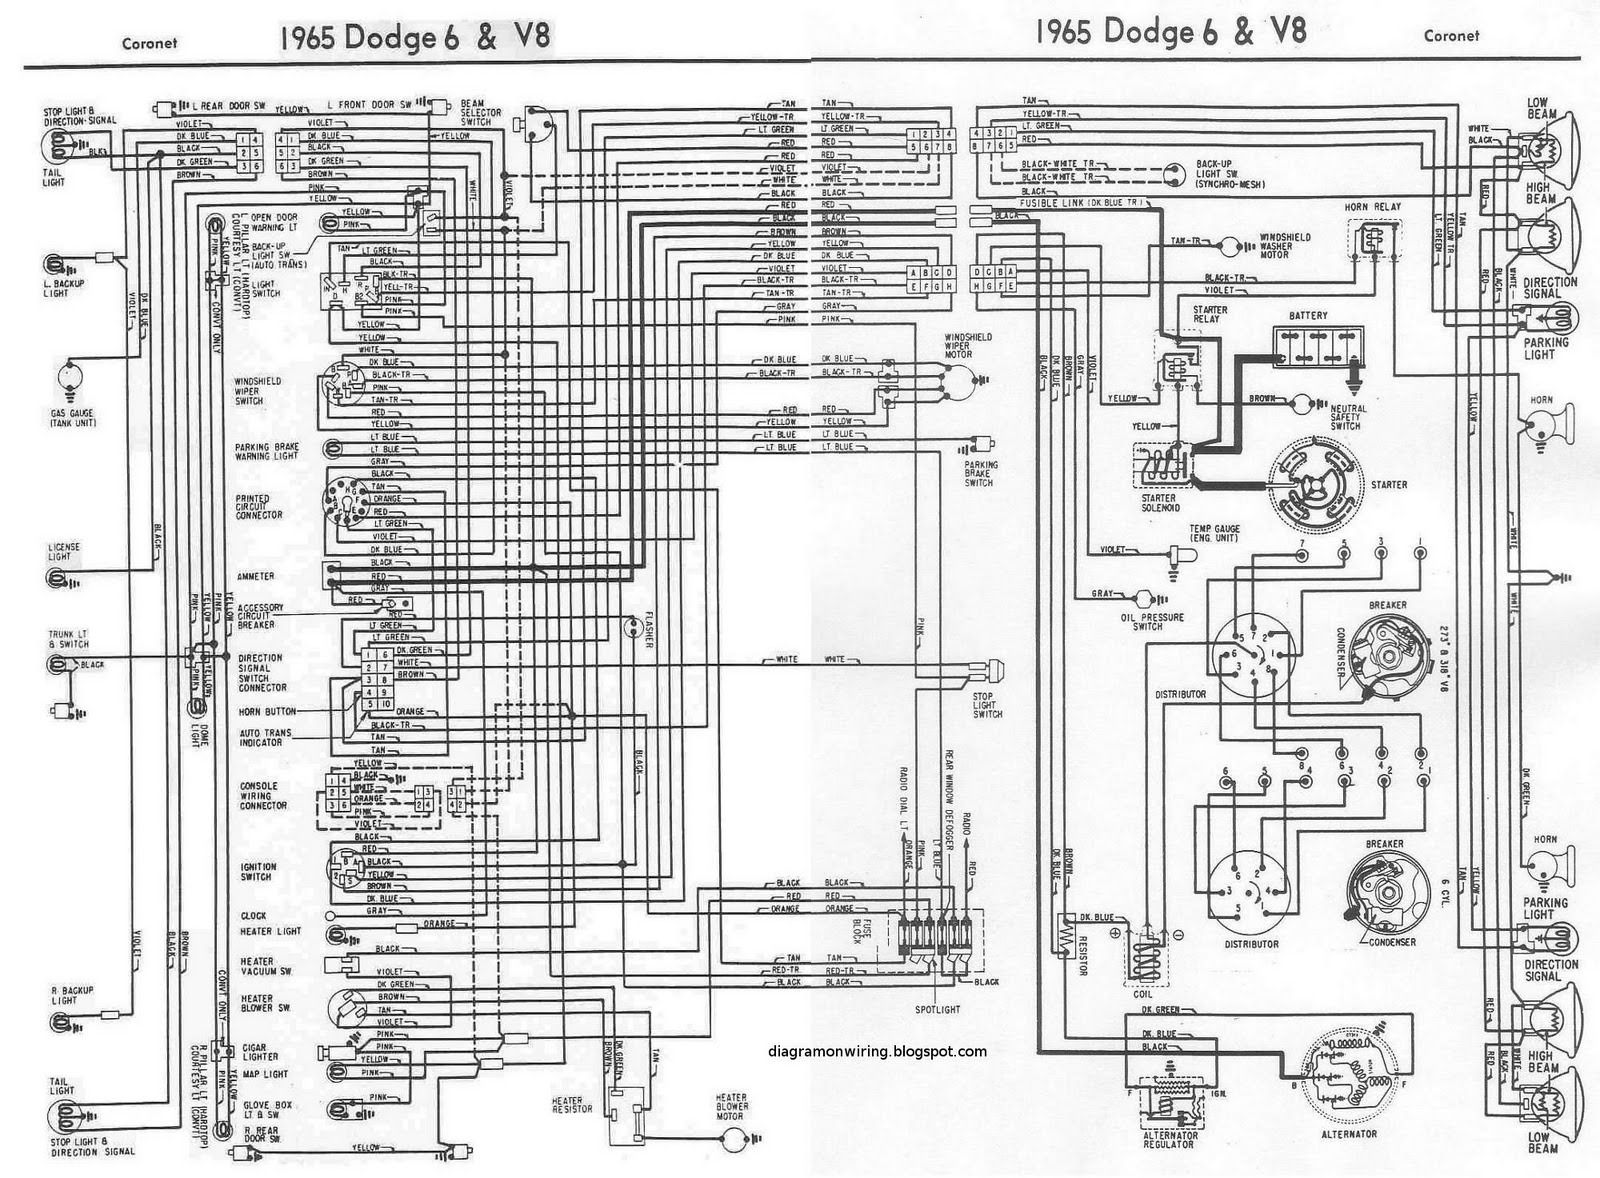 70 hp force wiring diagram 1971 cuda wiring diagram - wiring diagram #8